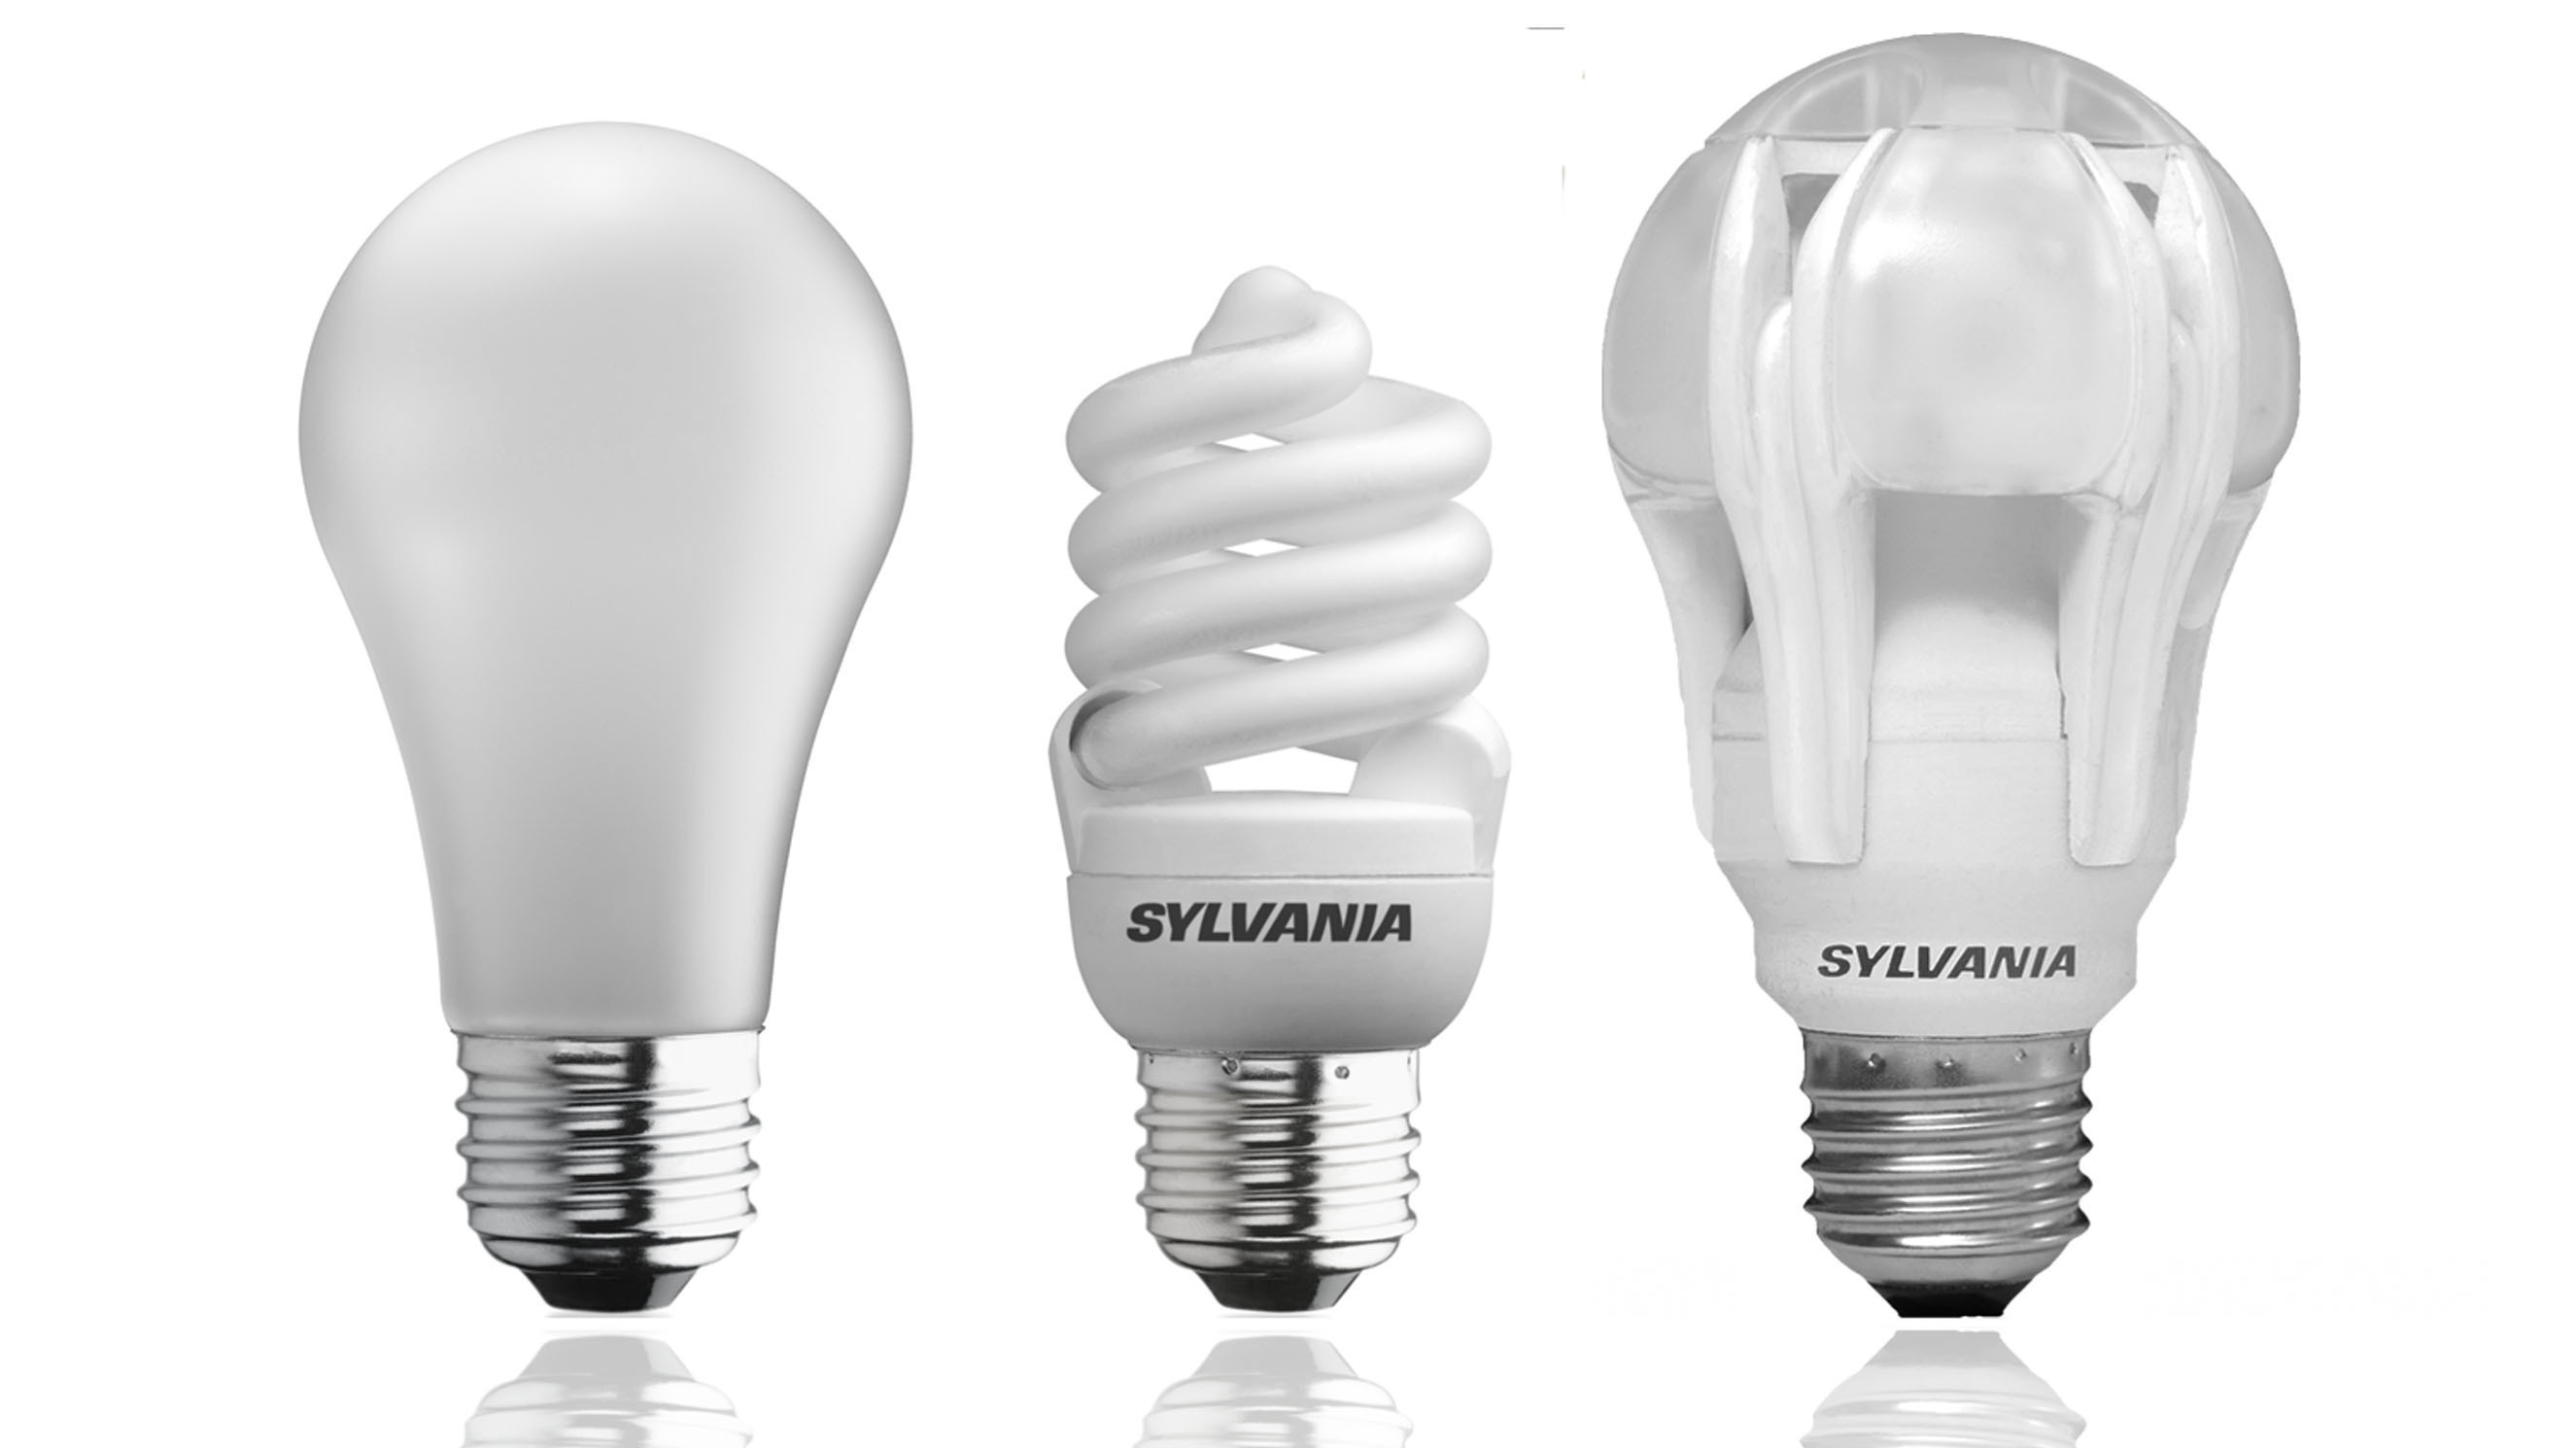 Led Lights Bad Health Energy Efficient Lightbulbs May Have Dark Side When It Comes